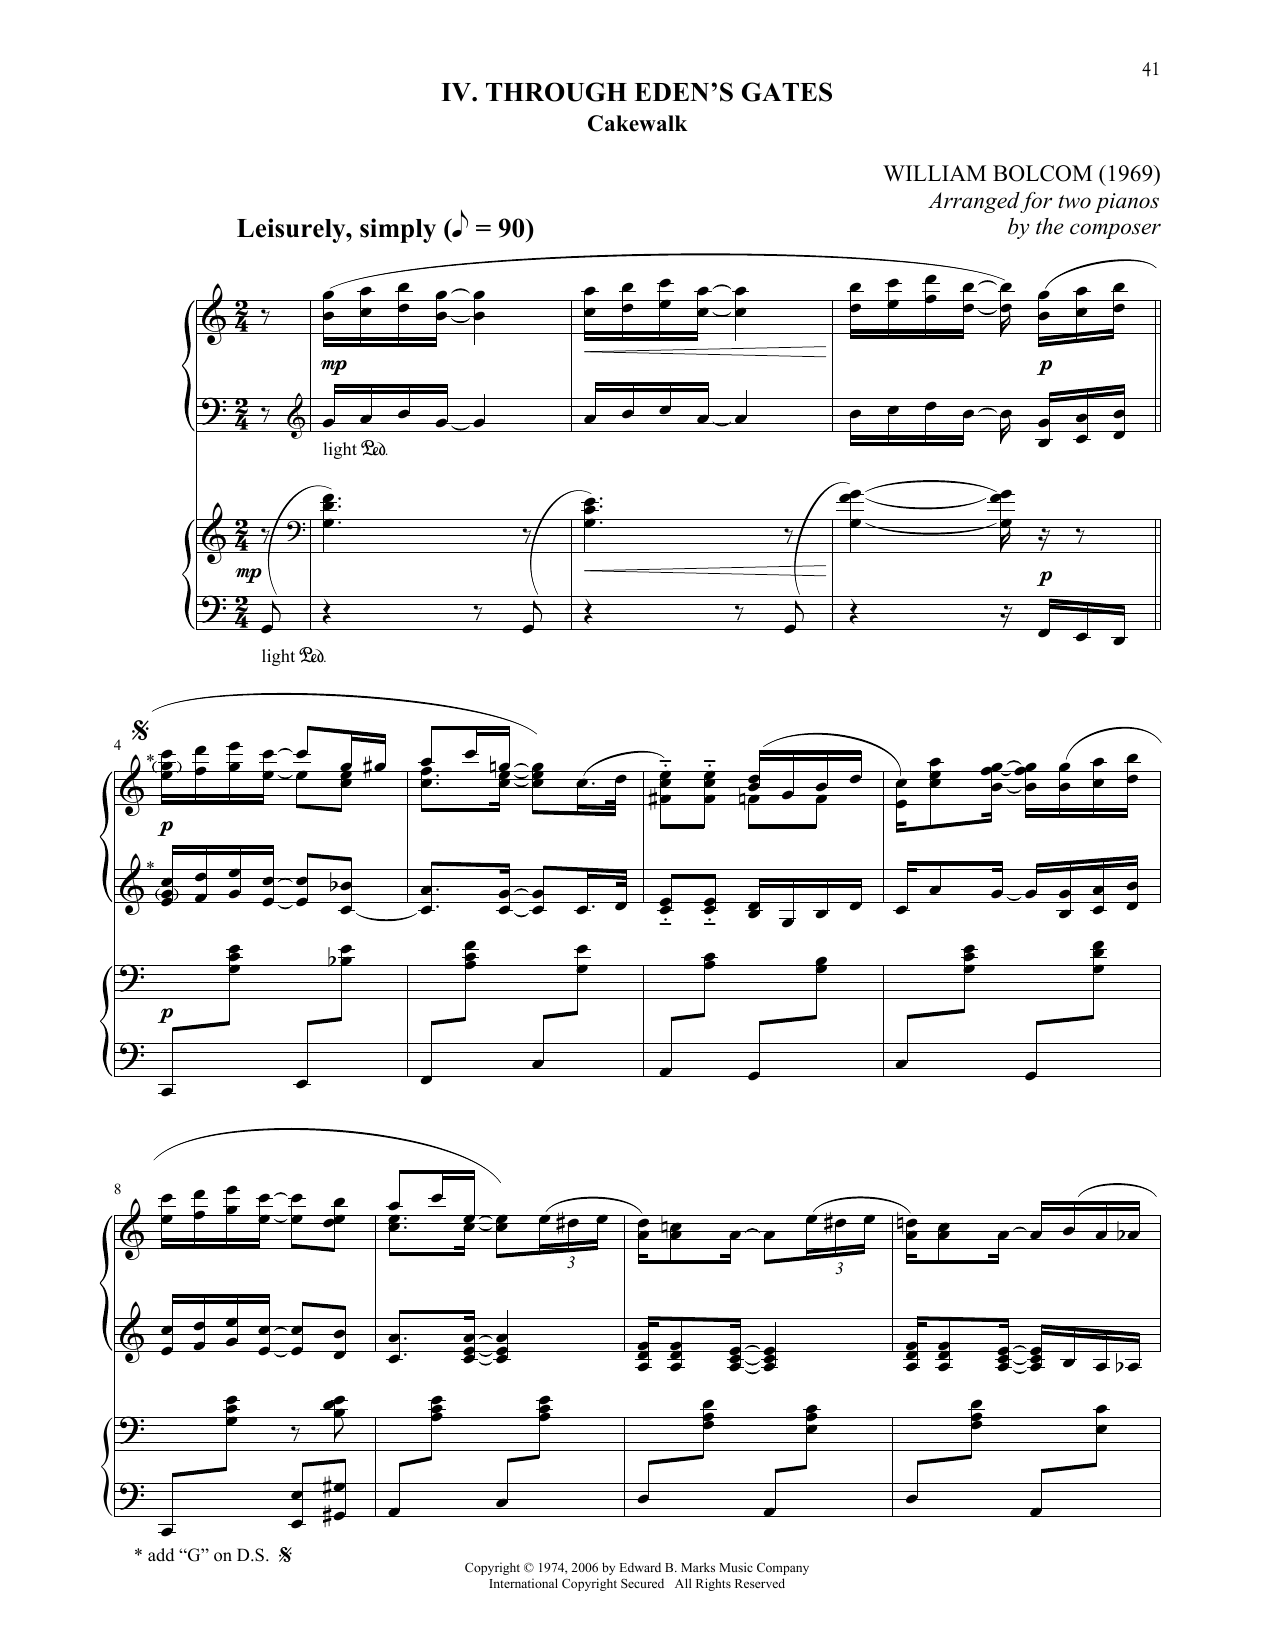 Through Eden's Gates Sheet Music